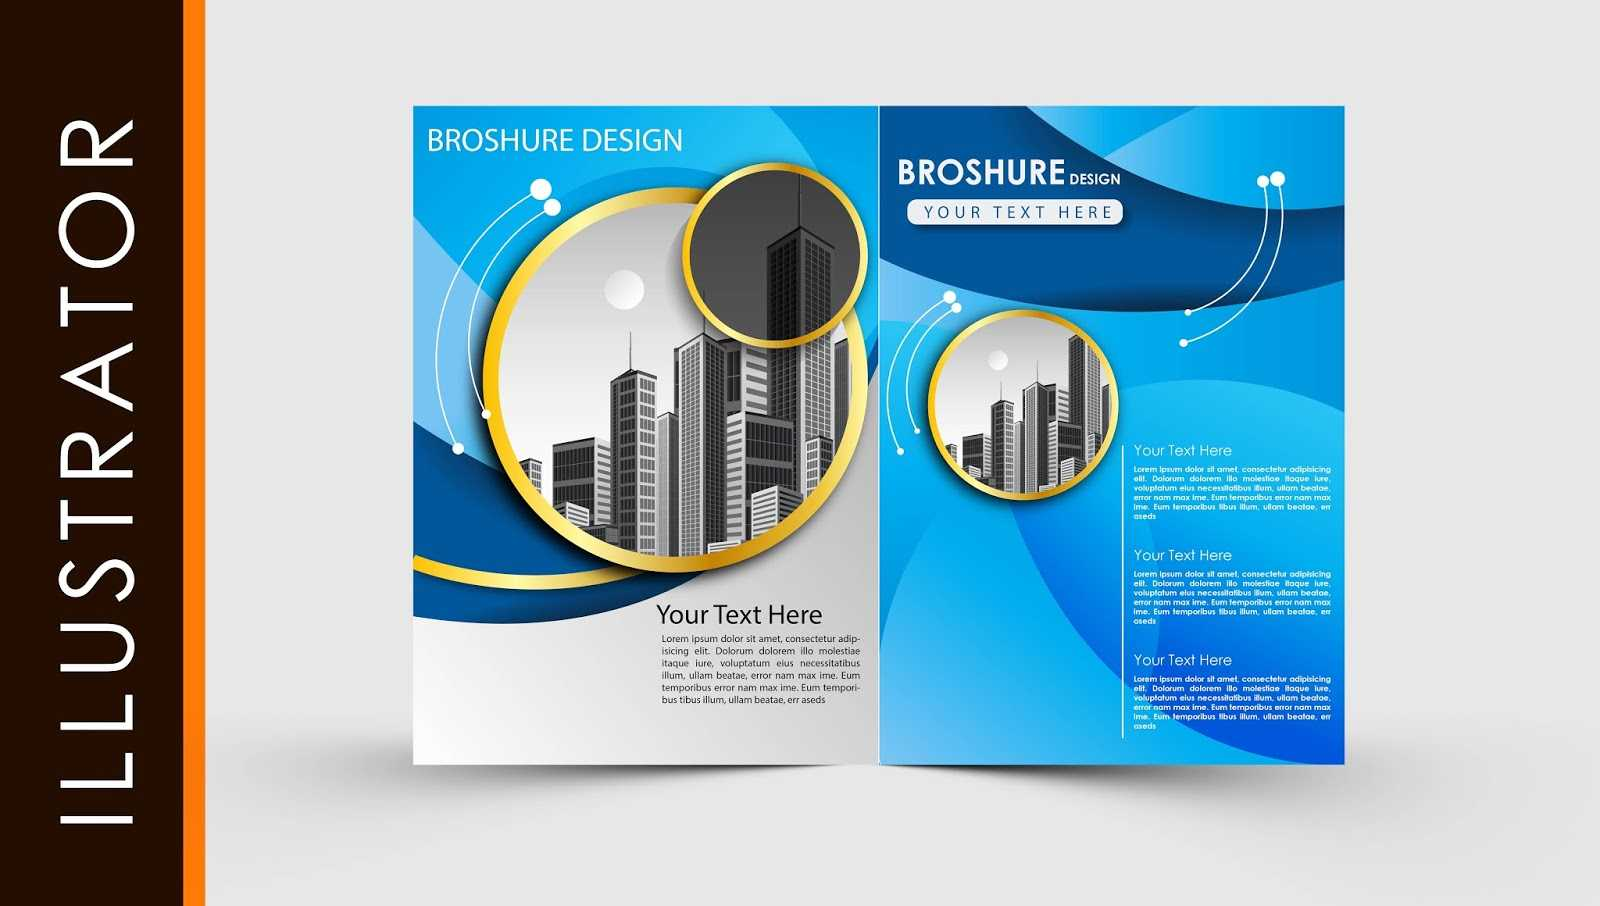 Free Download Adobe Illustrator Template Brochure Two Fold With Regard To Illustrator Brochure Templates Free Download